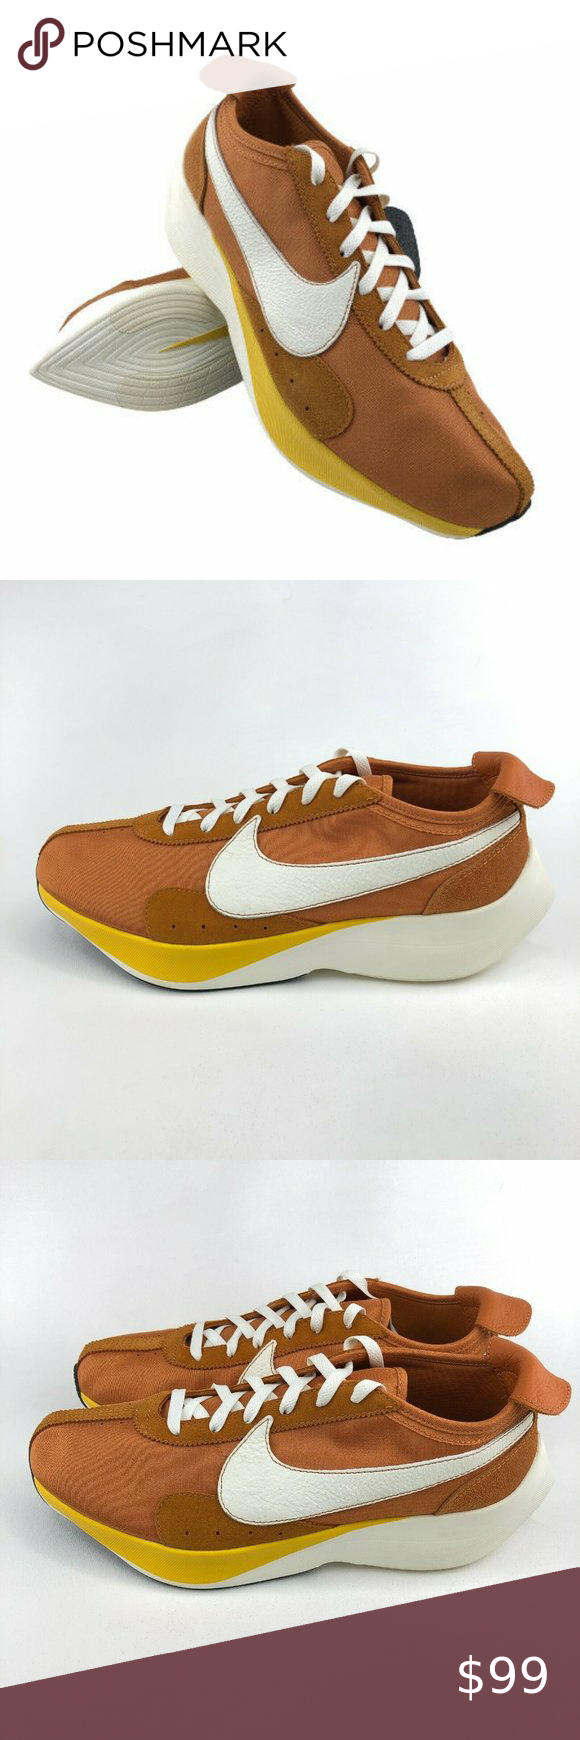 Nike Moon Racer Qs Running Shoes Mens 13 Nike Moon Racer Qs Running Shoes Mpn Bv779 800 Color Monarch Sail Amarillo Loosely Moon Shoes Shoes Mens Suede Heels